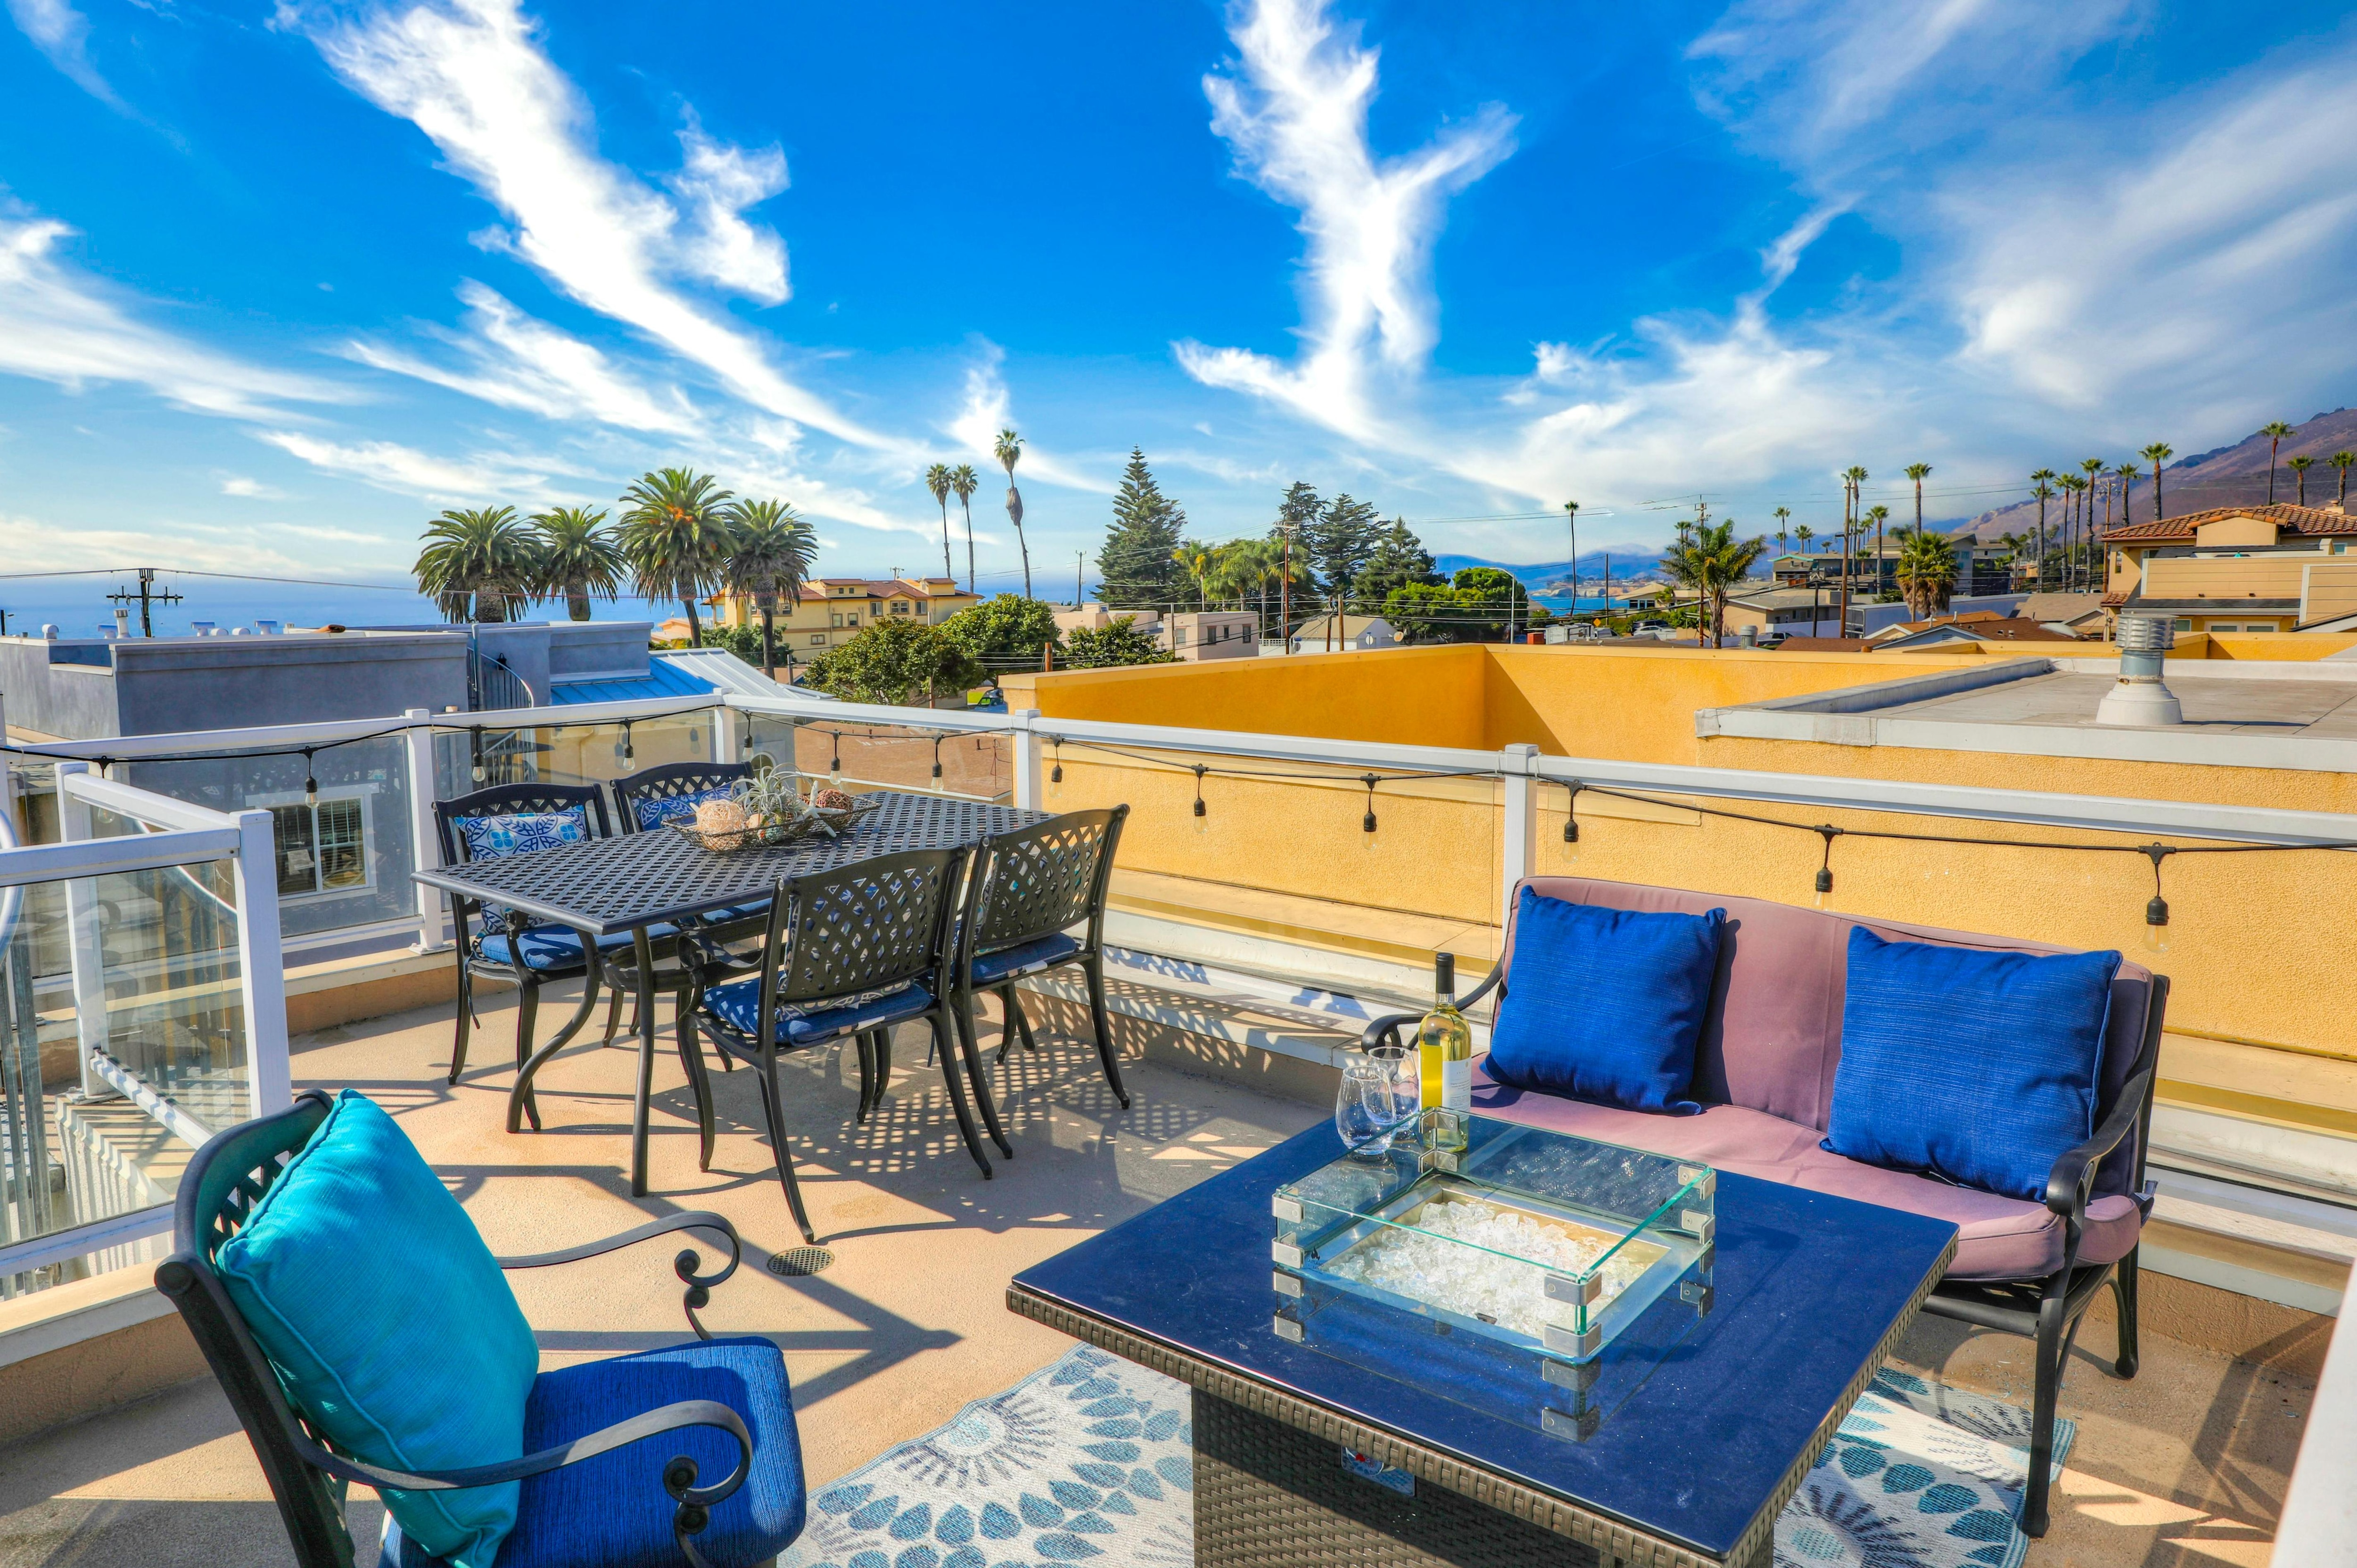 Welcome to Pacific Sunset on San Luis Ave in Pismo Beach. Unobstructed 360 views from rooftop of beach, downtown and mountains.